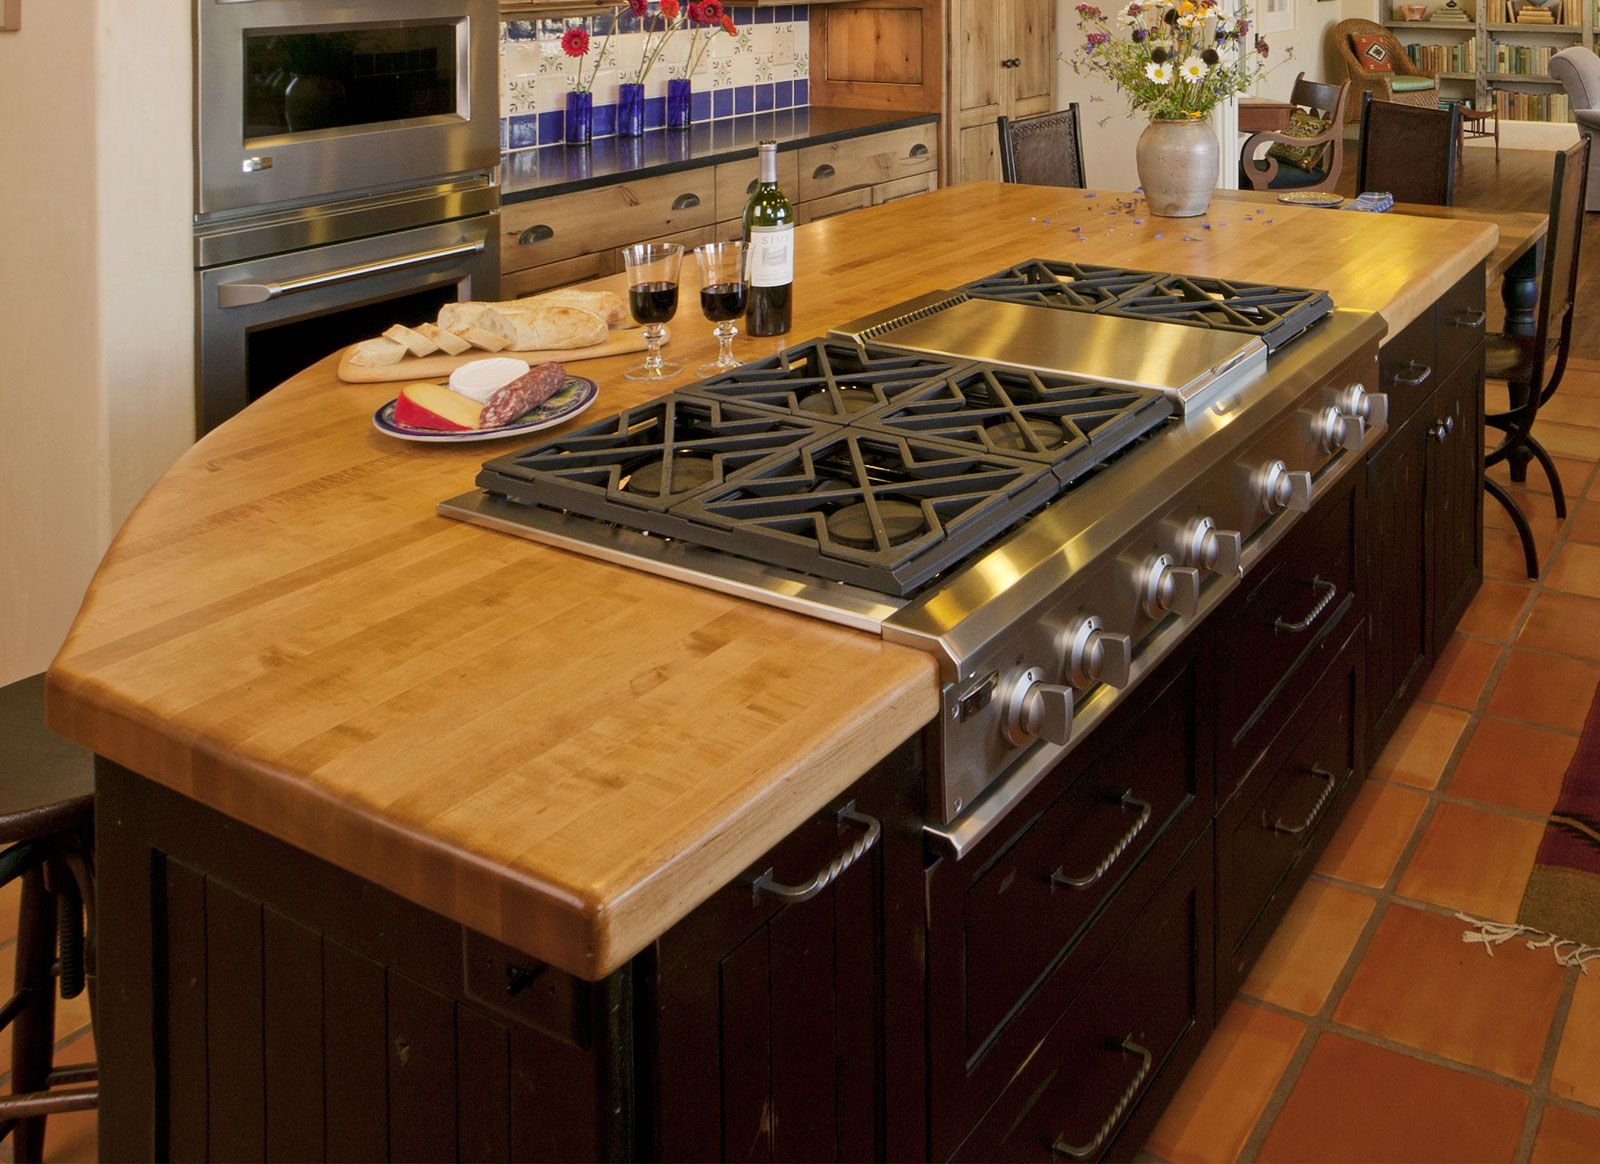 Laminate Countertops Are The Most Popular Choice For Modern Kitchen Design  On A Budget. Description